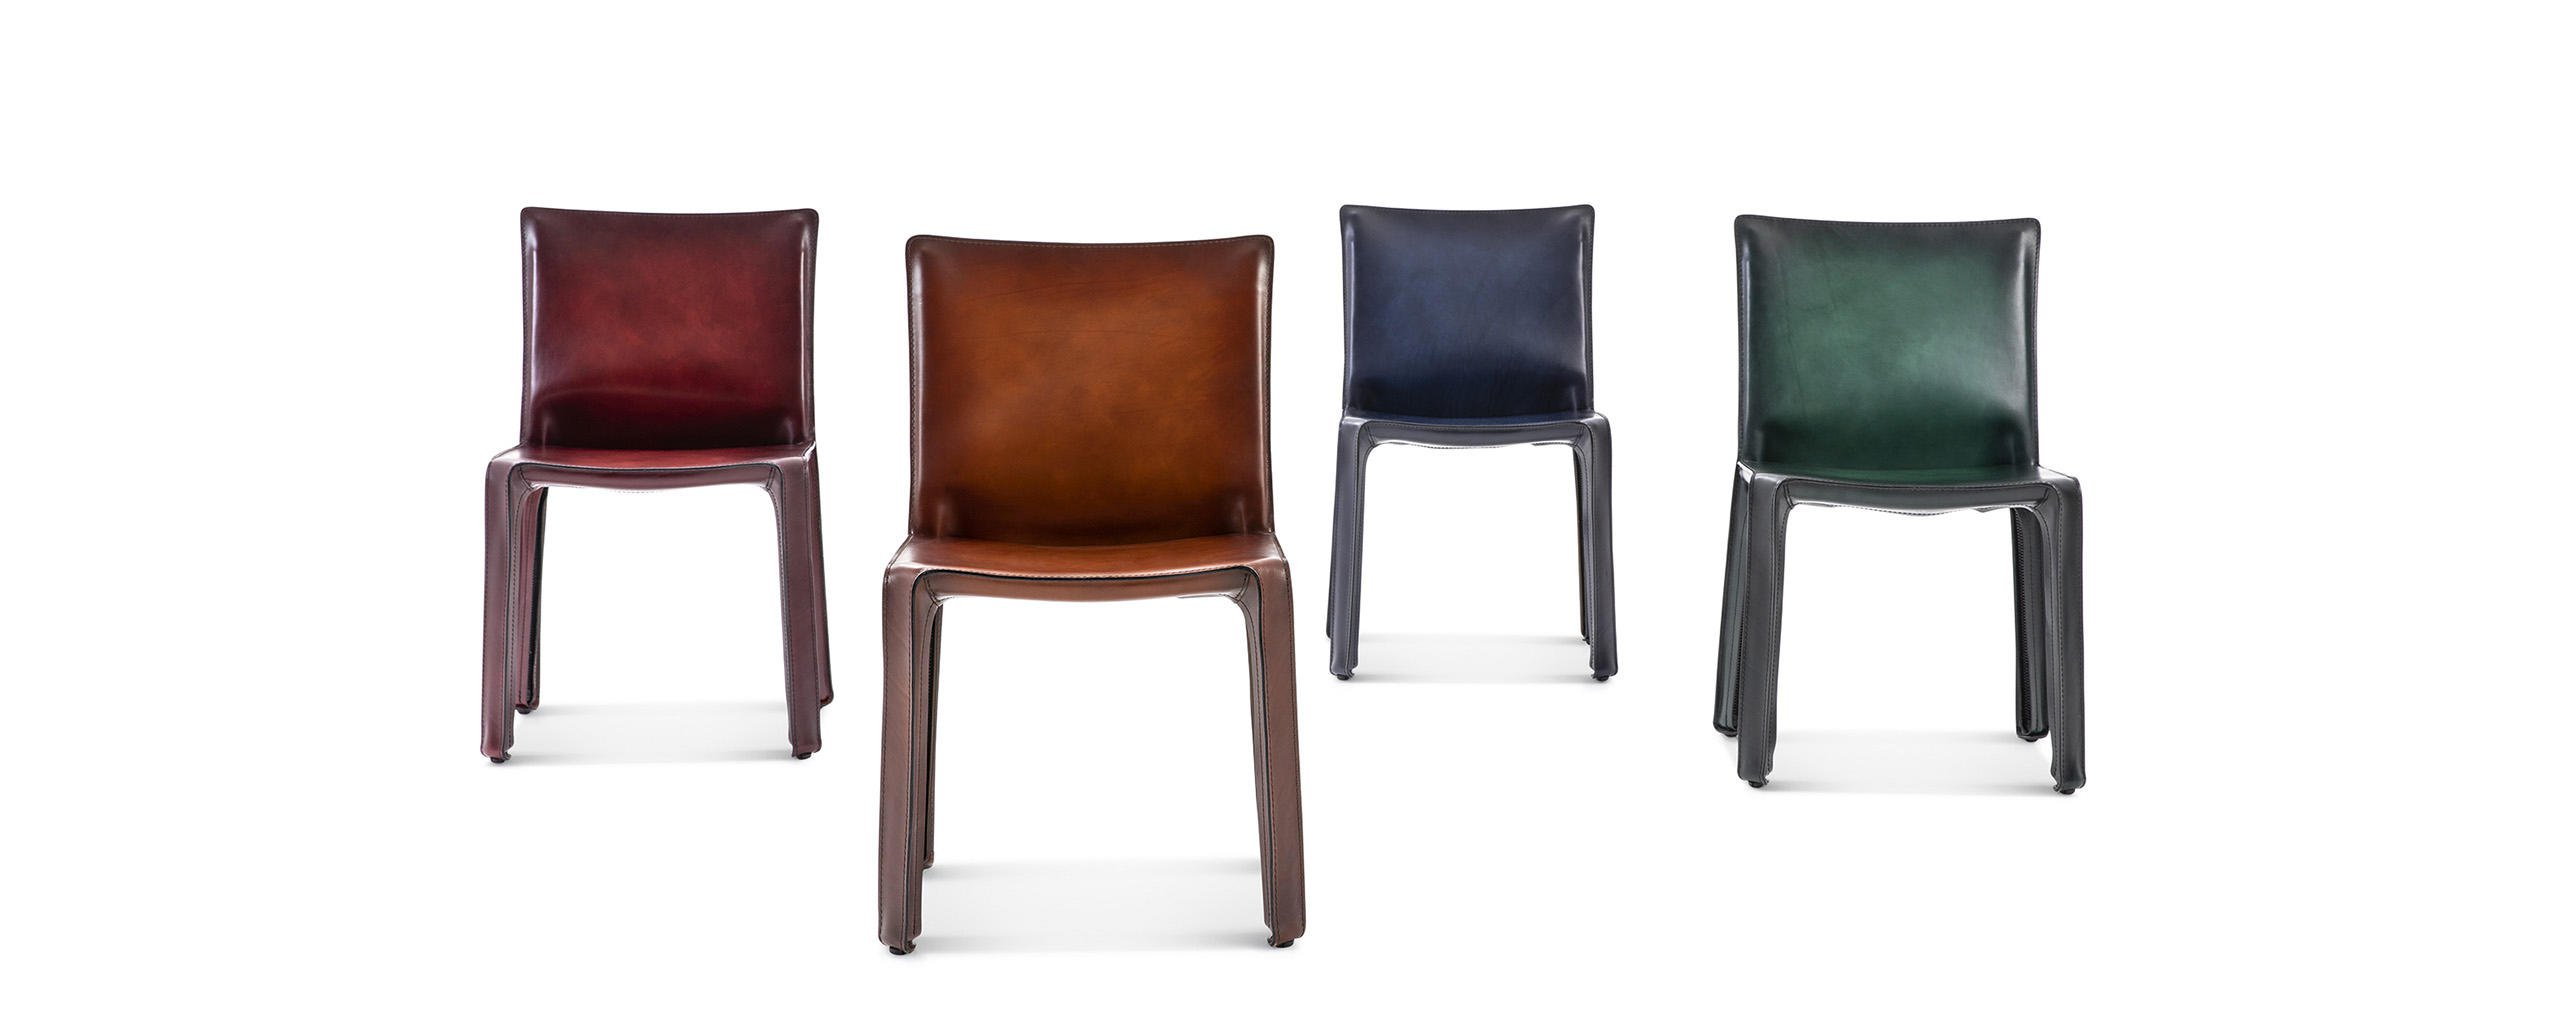 4_cassina_cab_mario_bellini_handcrafted_faded_effect